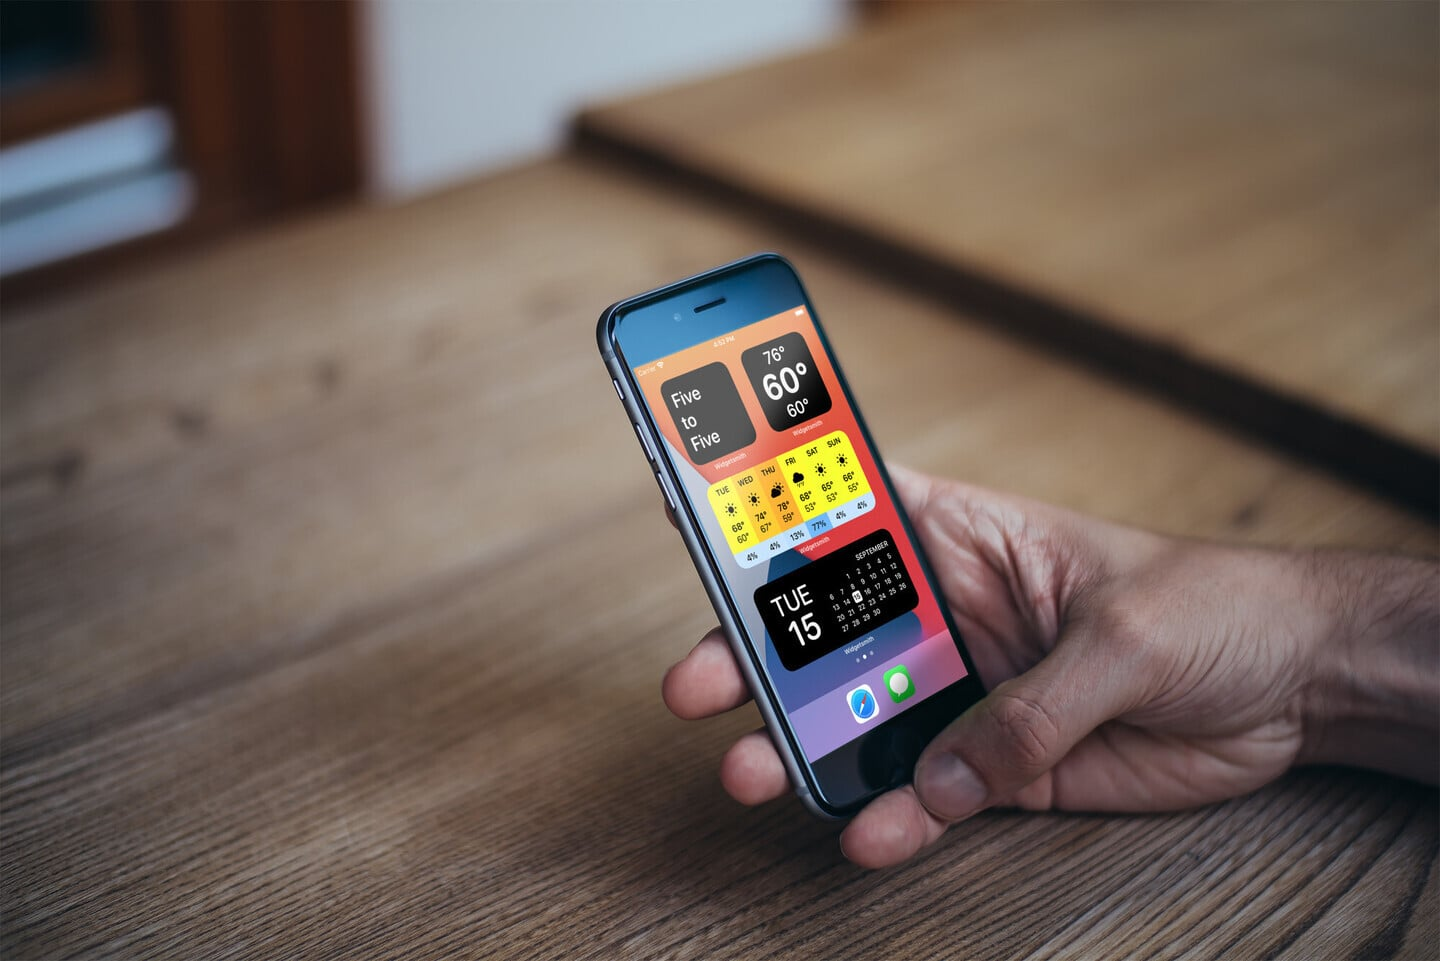 Widgetsmith is a Great Way to Customize Your iPhone or iPad Home Screen